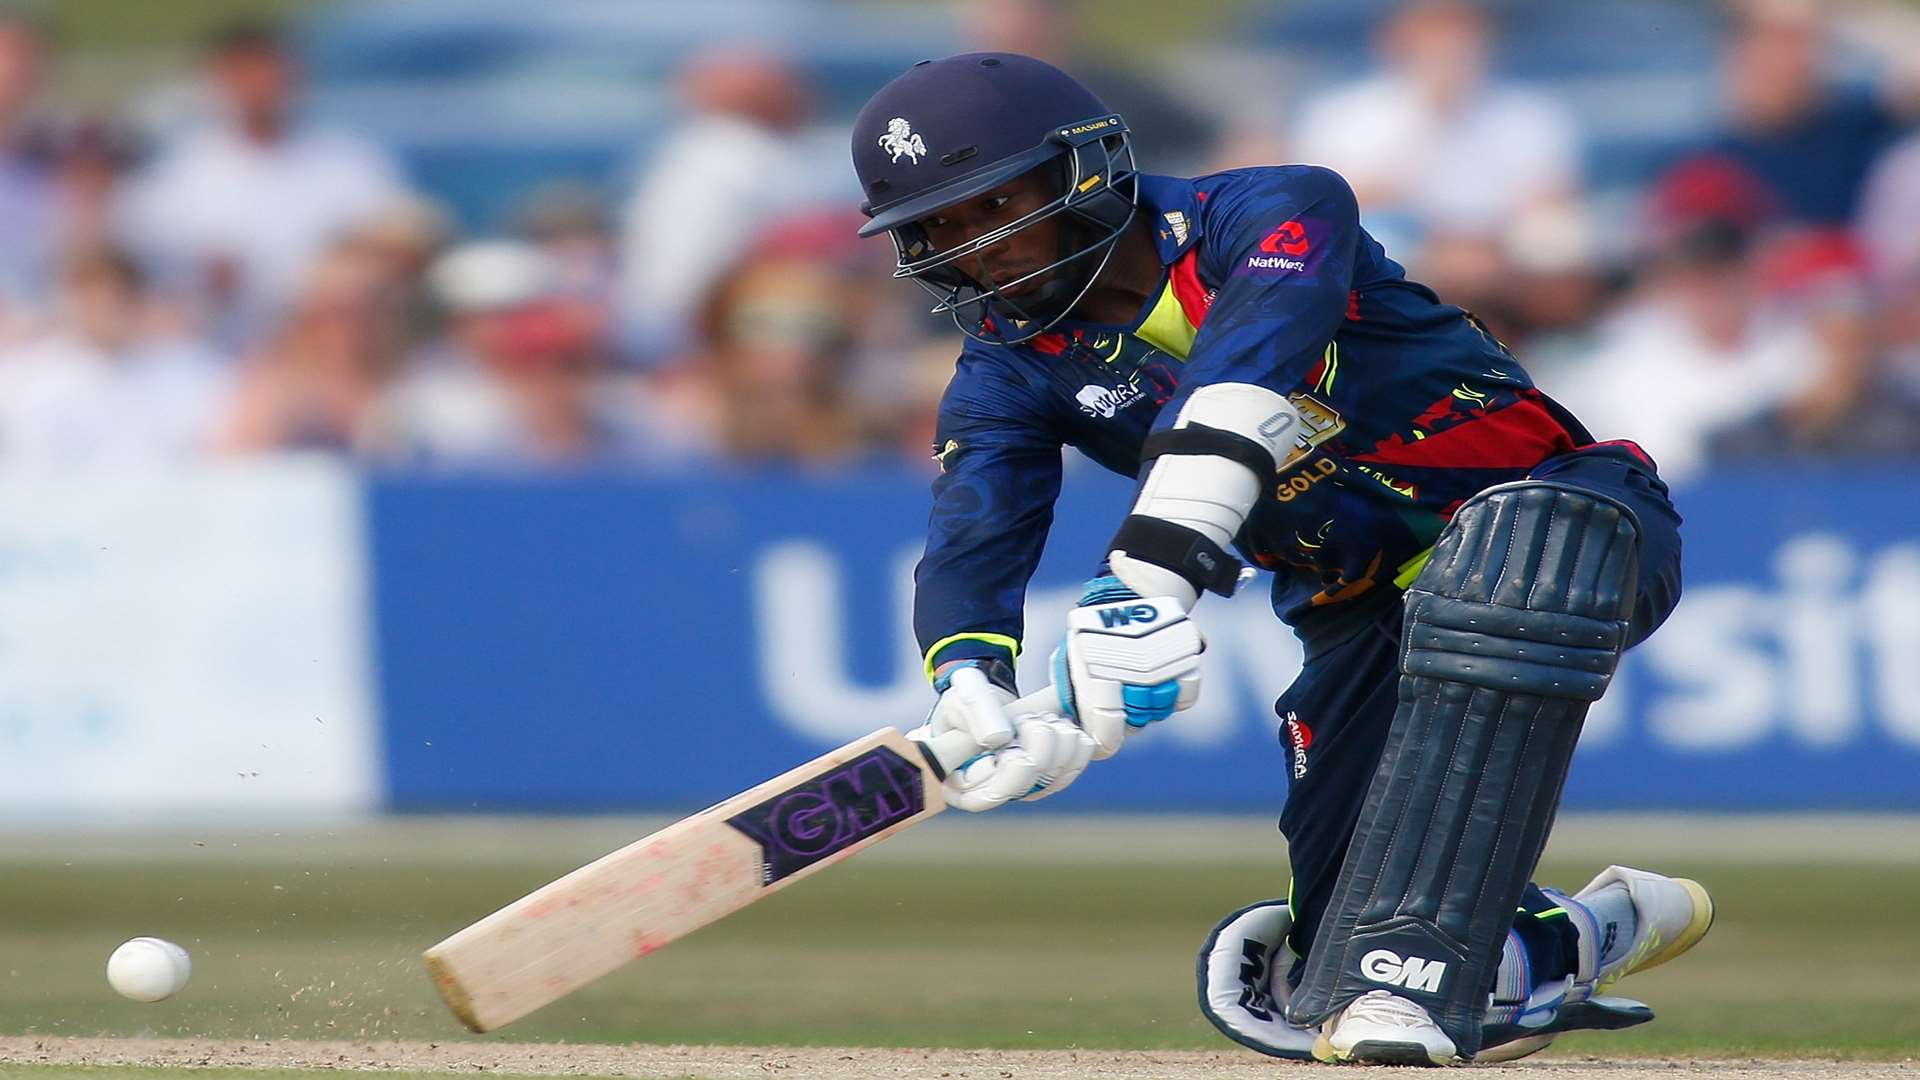 Daniel Bell-Drummond on his way to 90 not out for Spitfires. Picture: Andy Jones